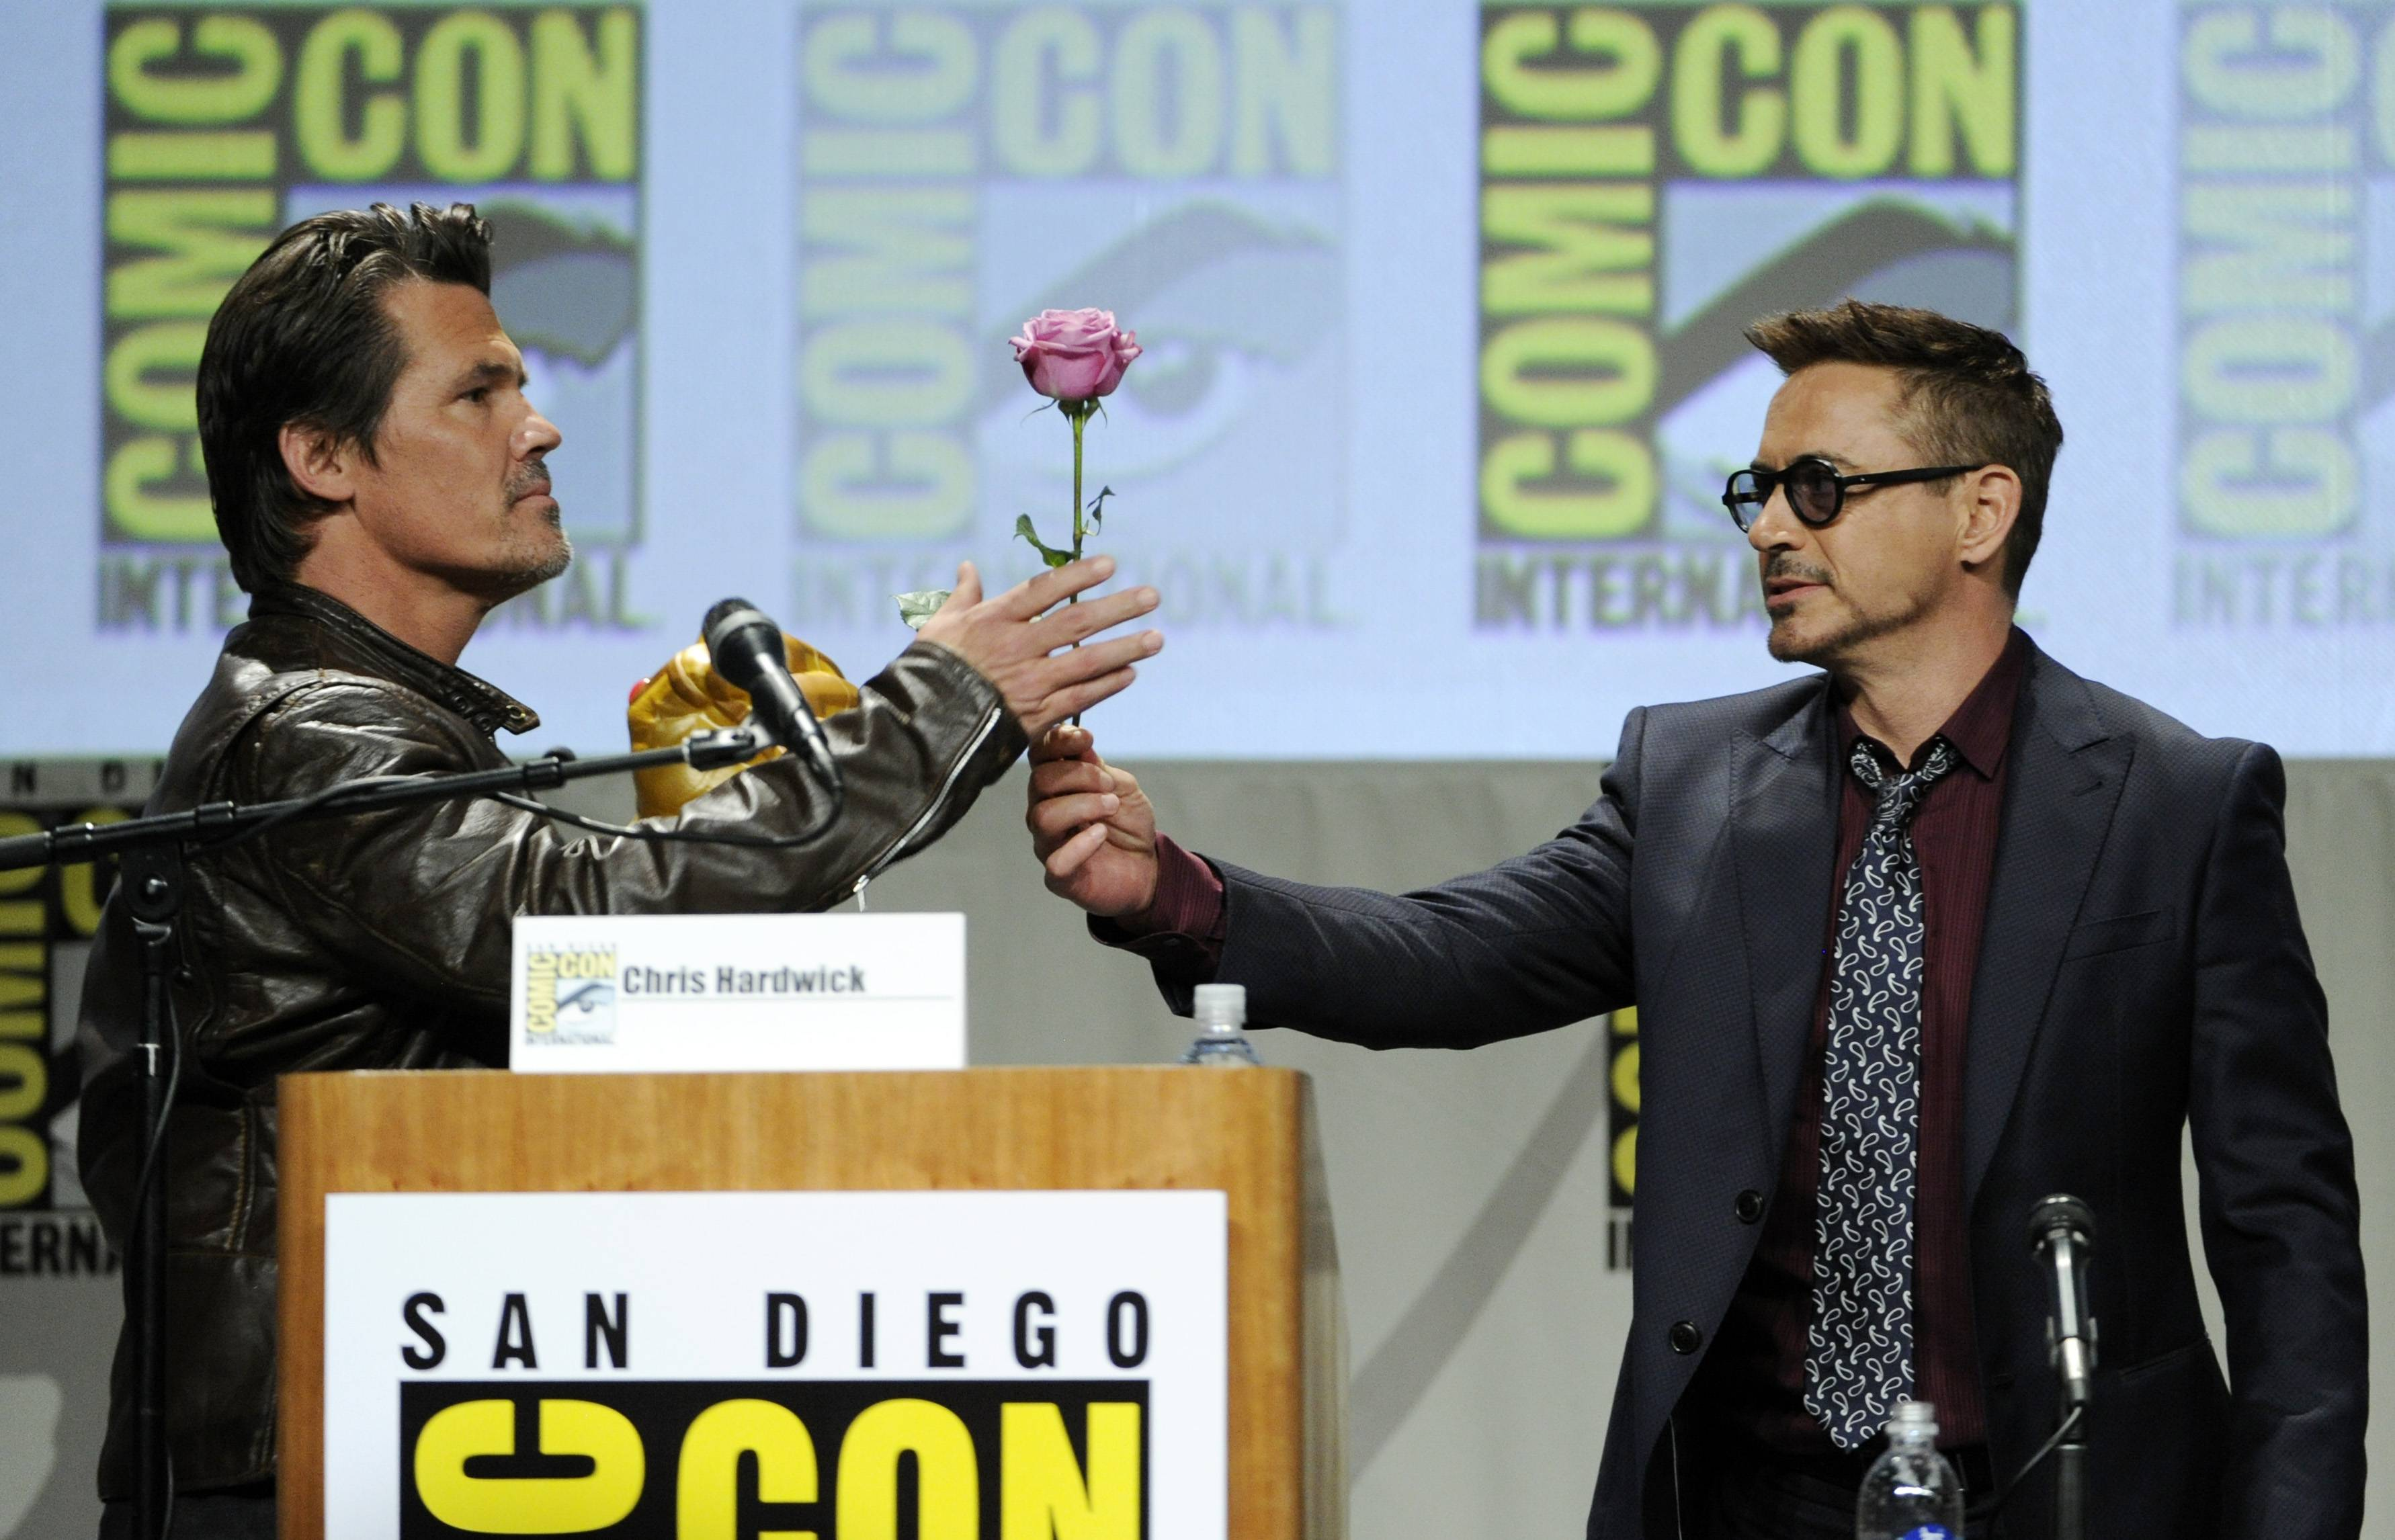 Robert Downey Jr., right, hands Josh Brolin a flower during the Marvel panel at Comic-Con International on Saturday.